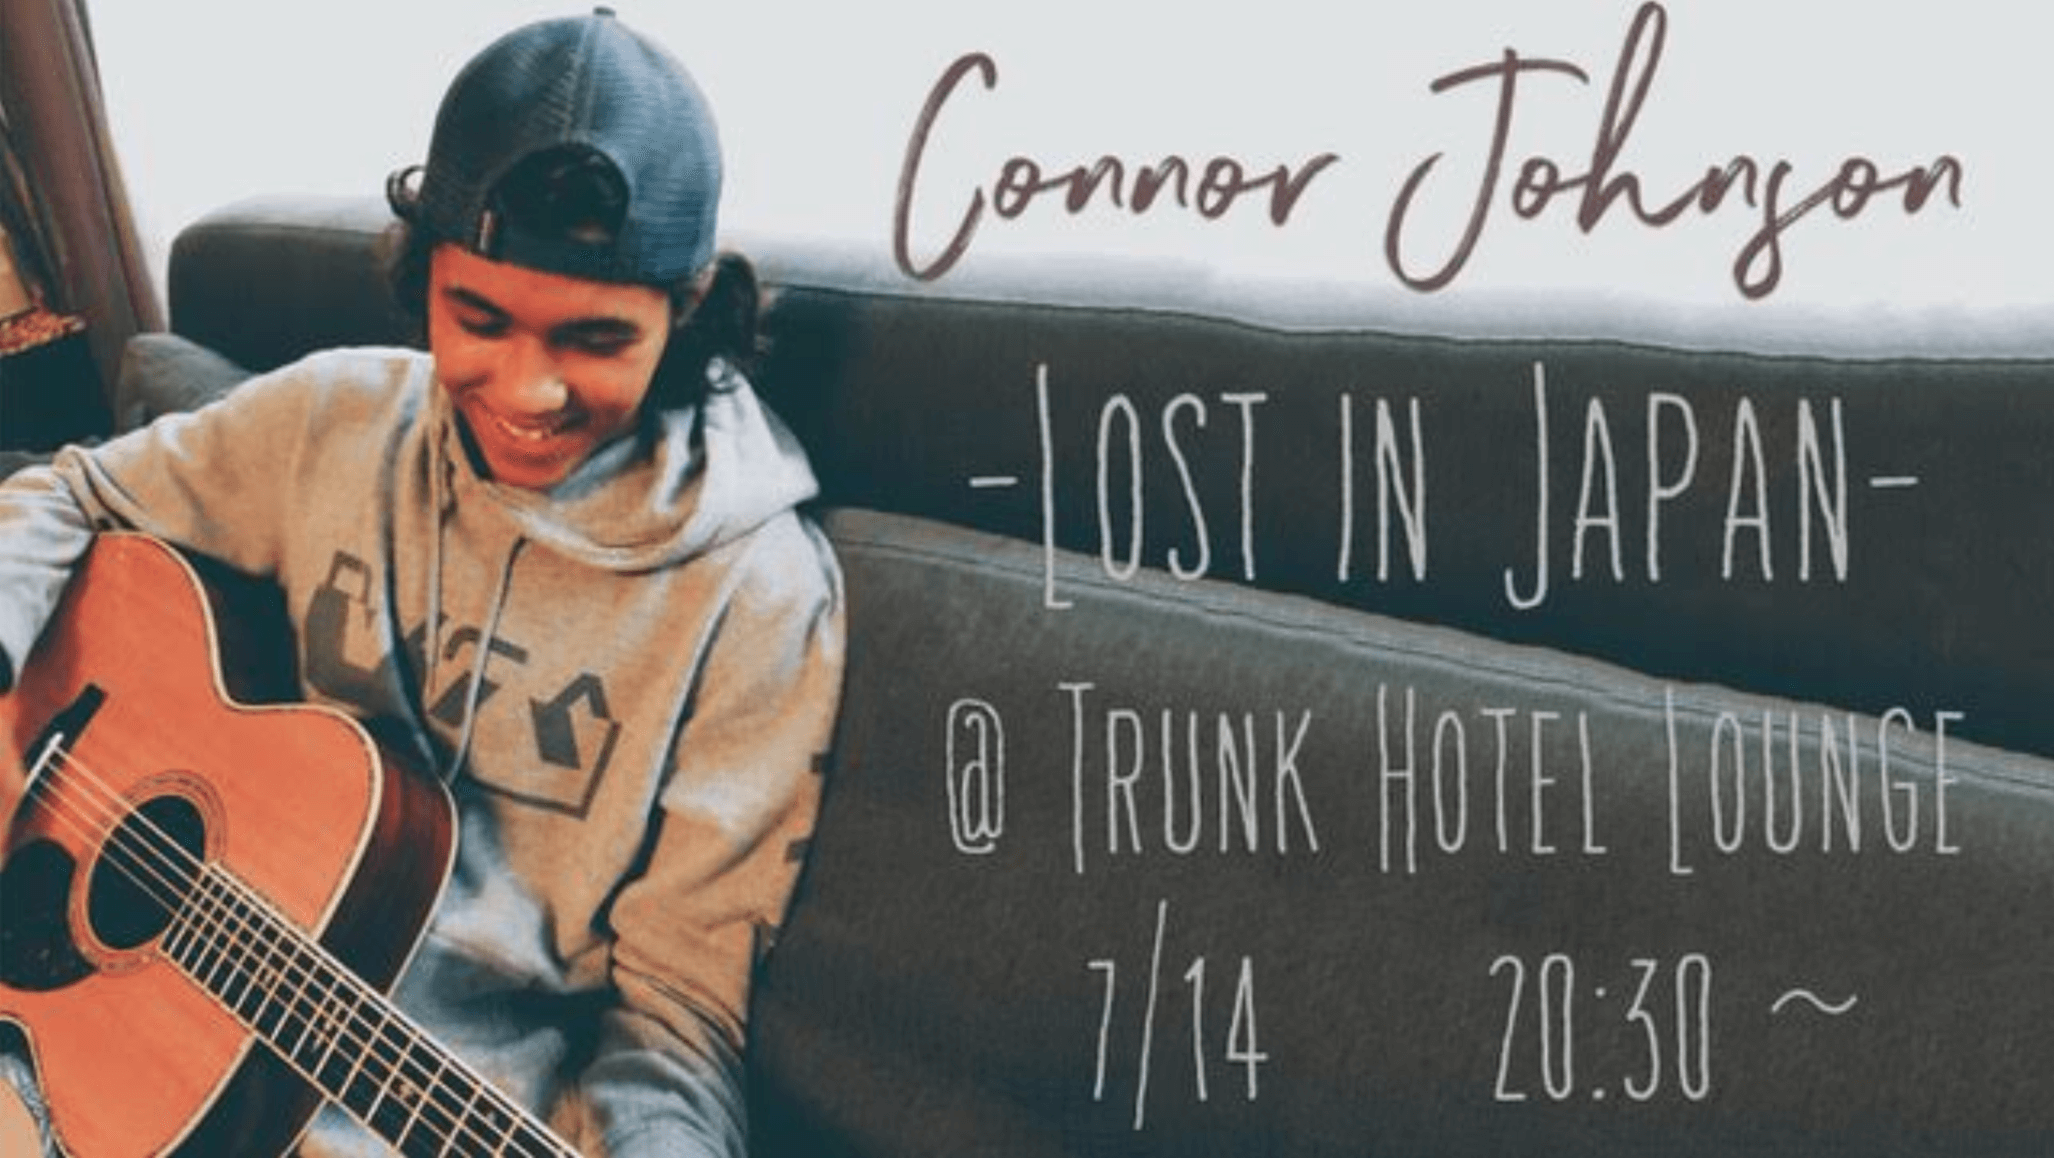 2018.7.14 Connor Johnson - Lost In Japan -